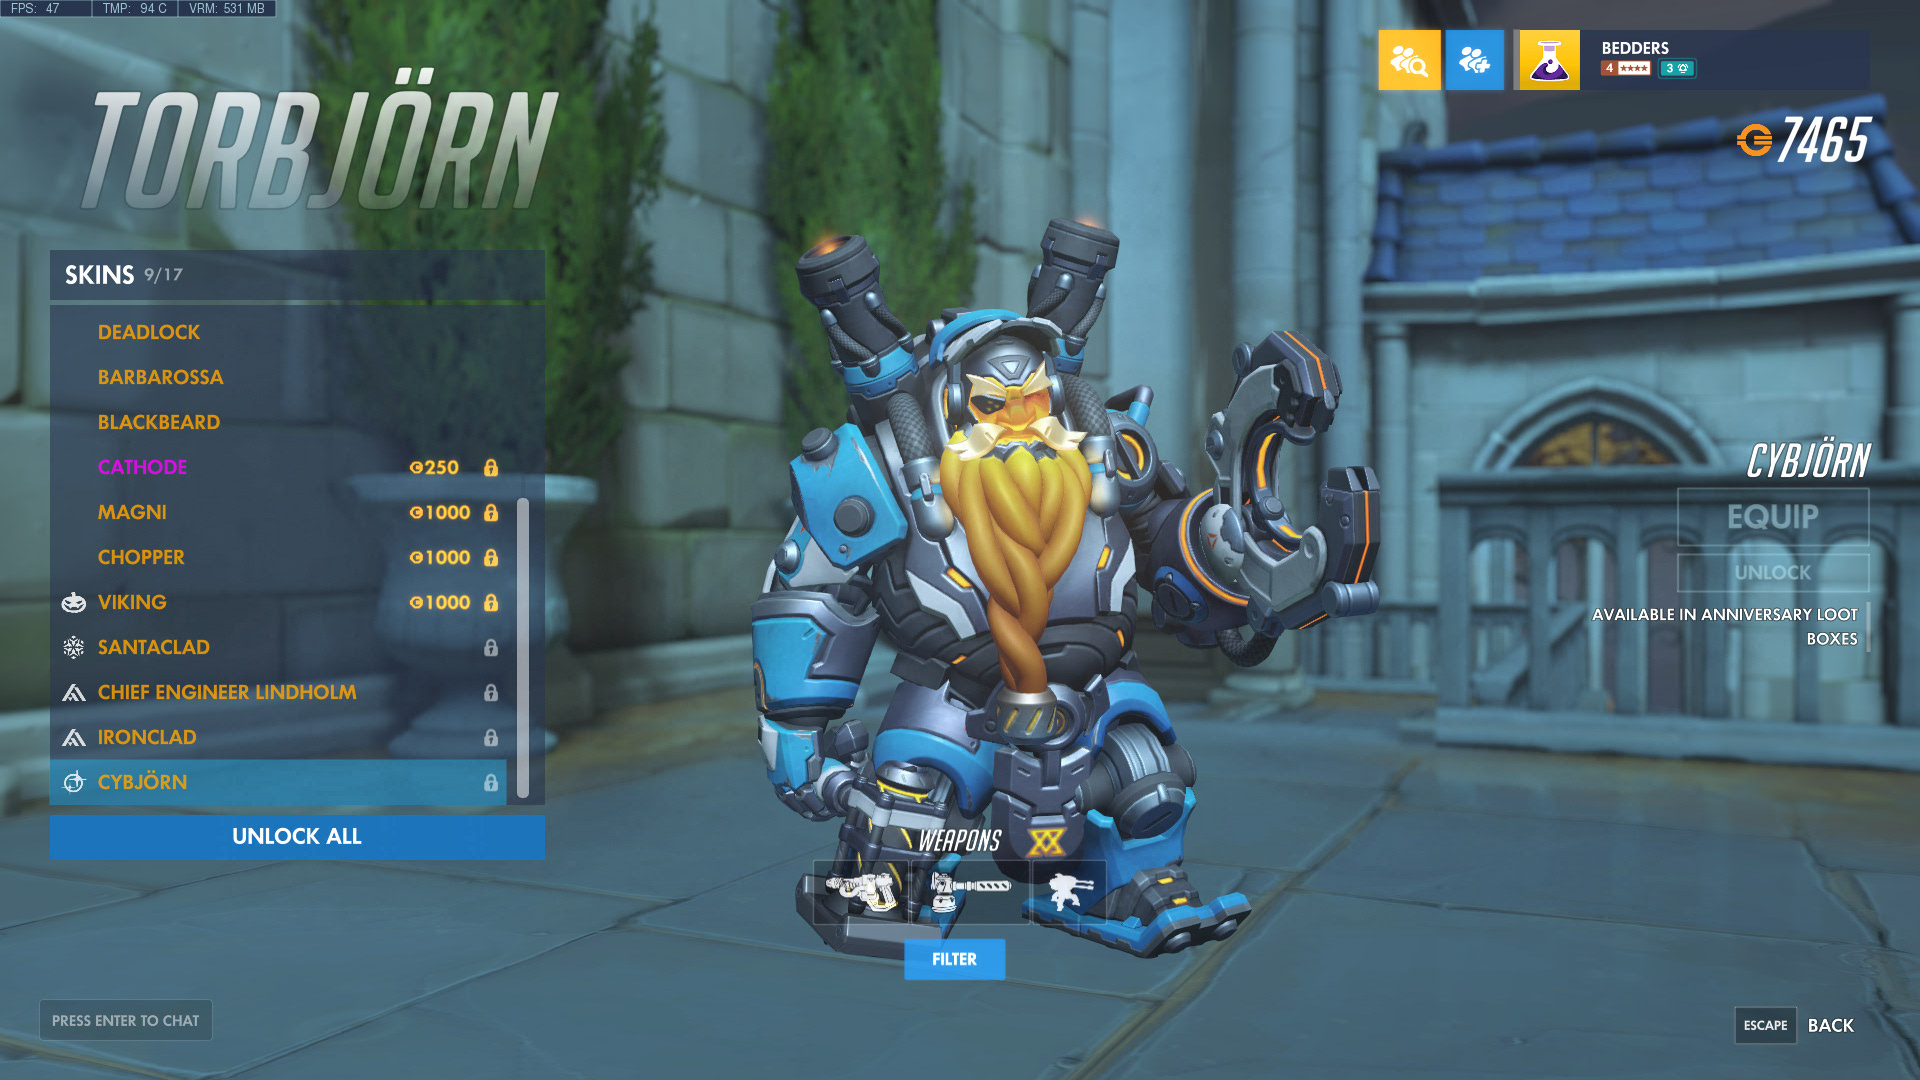 Torbjorn guide 2018: Tips and strategy advice on how to play